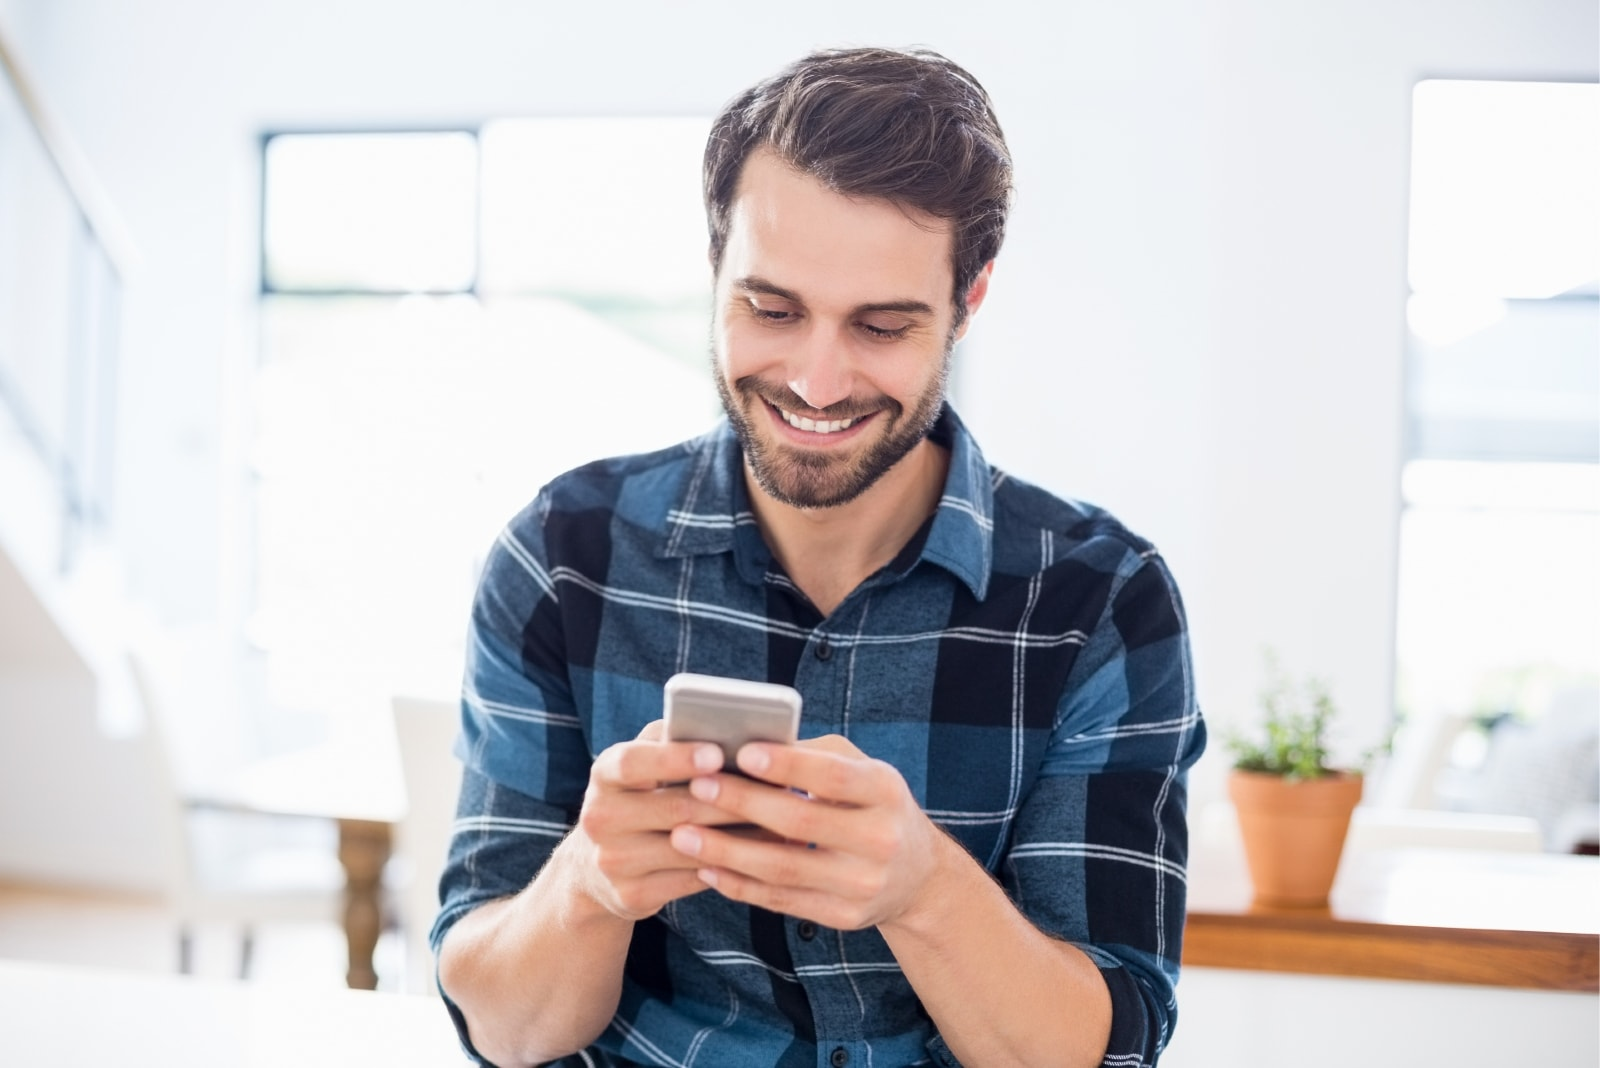 happy man in blue checked shirt using phone indoor